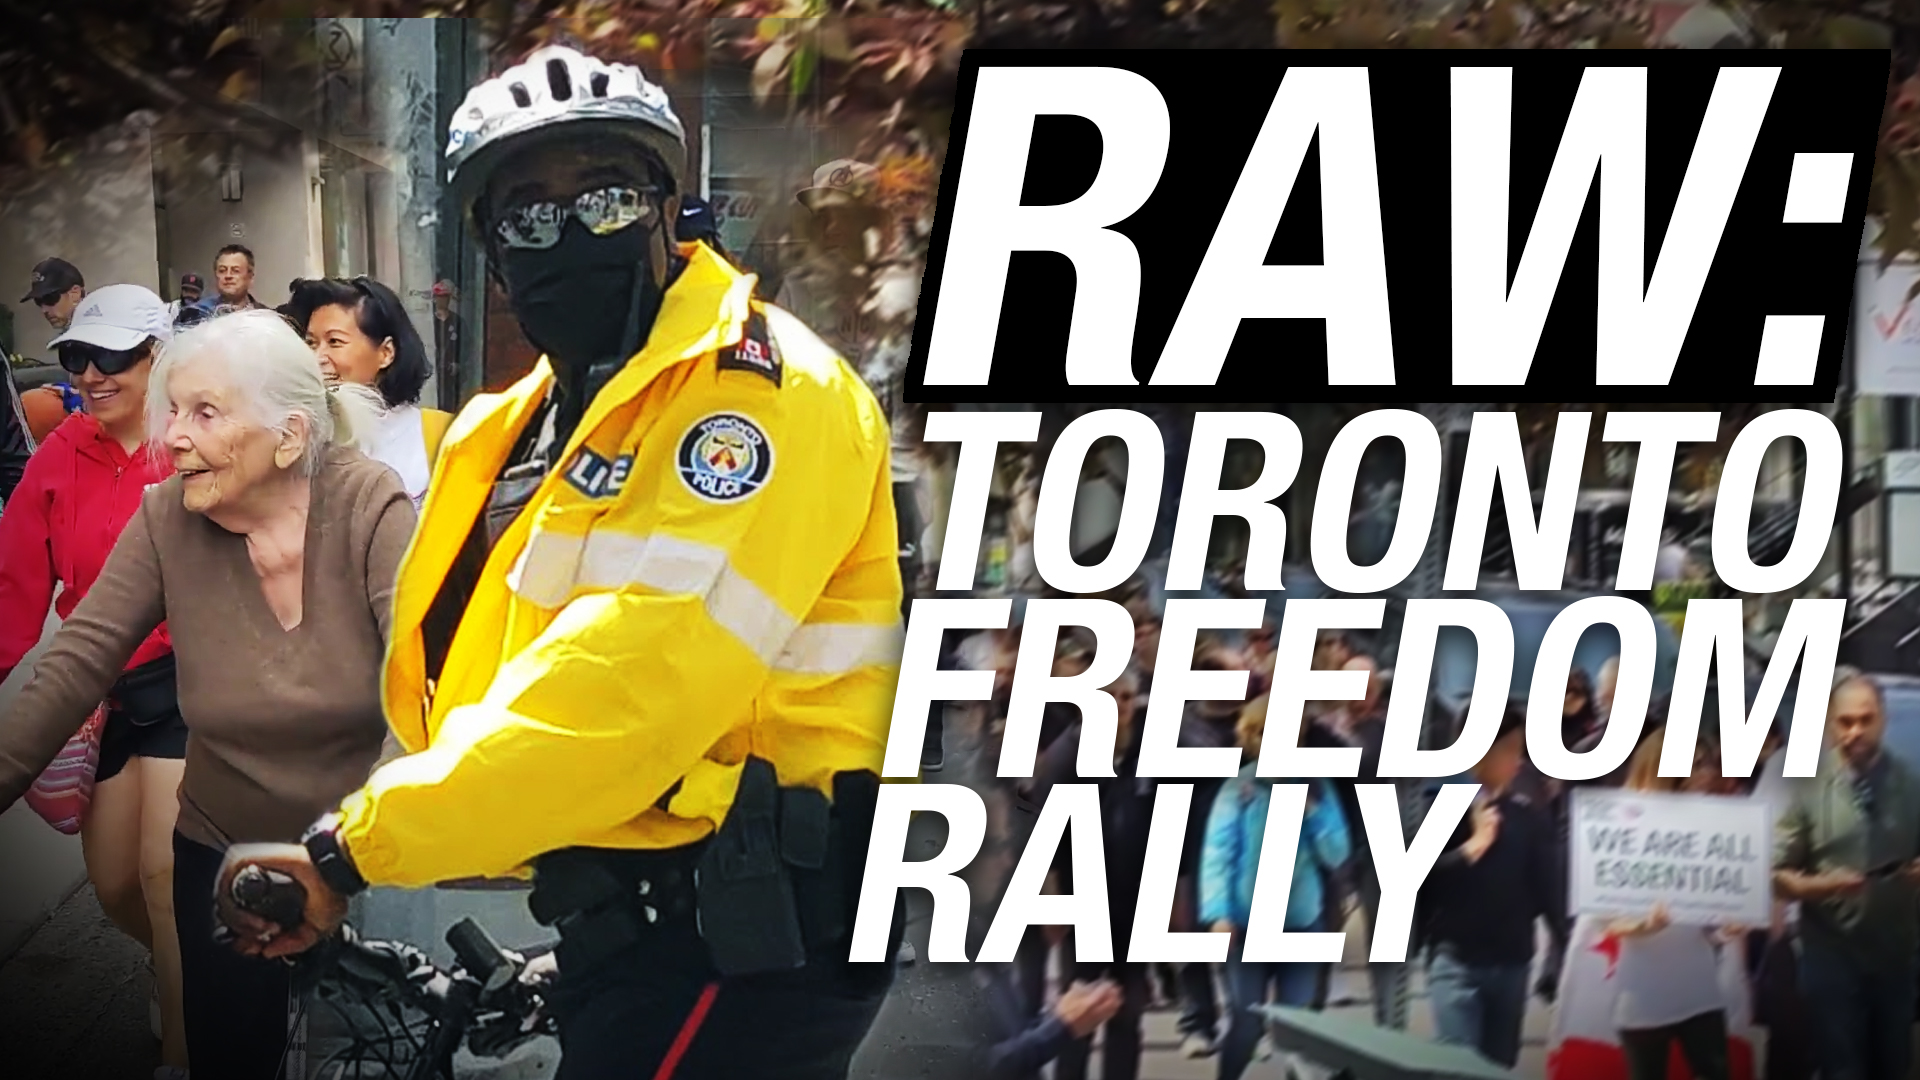 Police keep the peace between protesters, angry onlookers at Toronto Freedom Rally